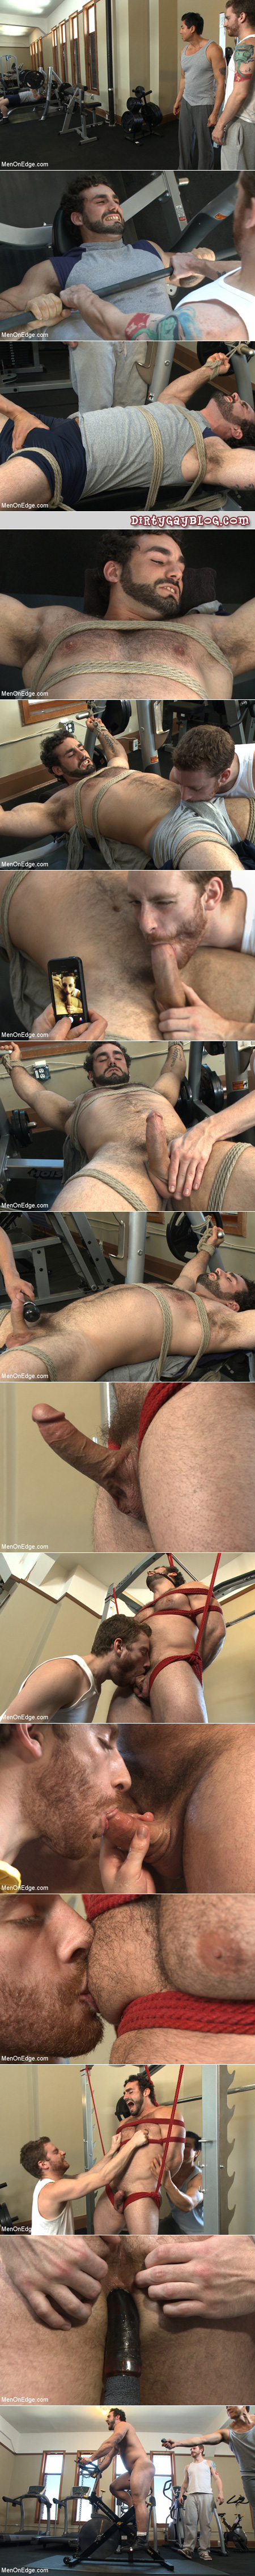 Hairy Greek bodybuilder captured at the gym, bound and edged for hours.